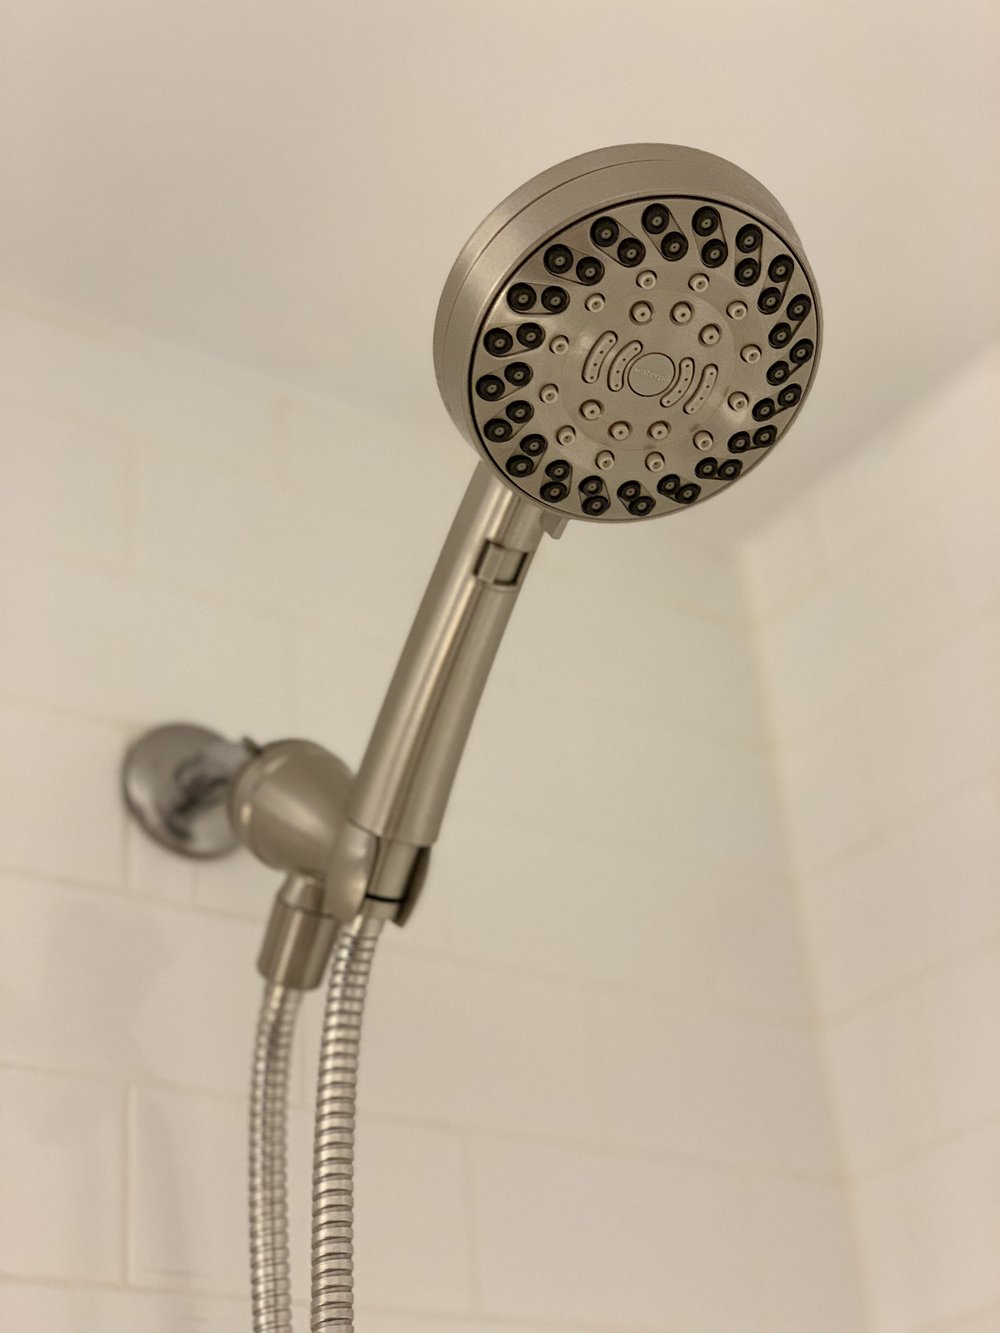 Guests love our Rain Shower Heads